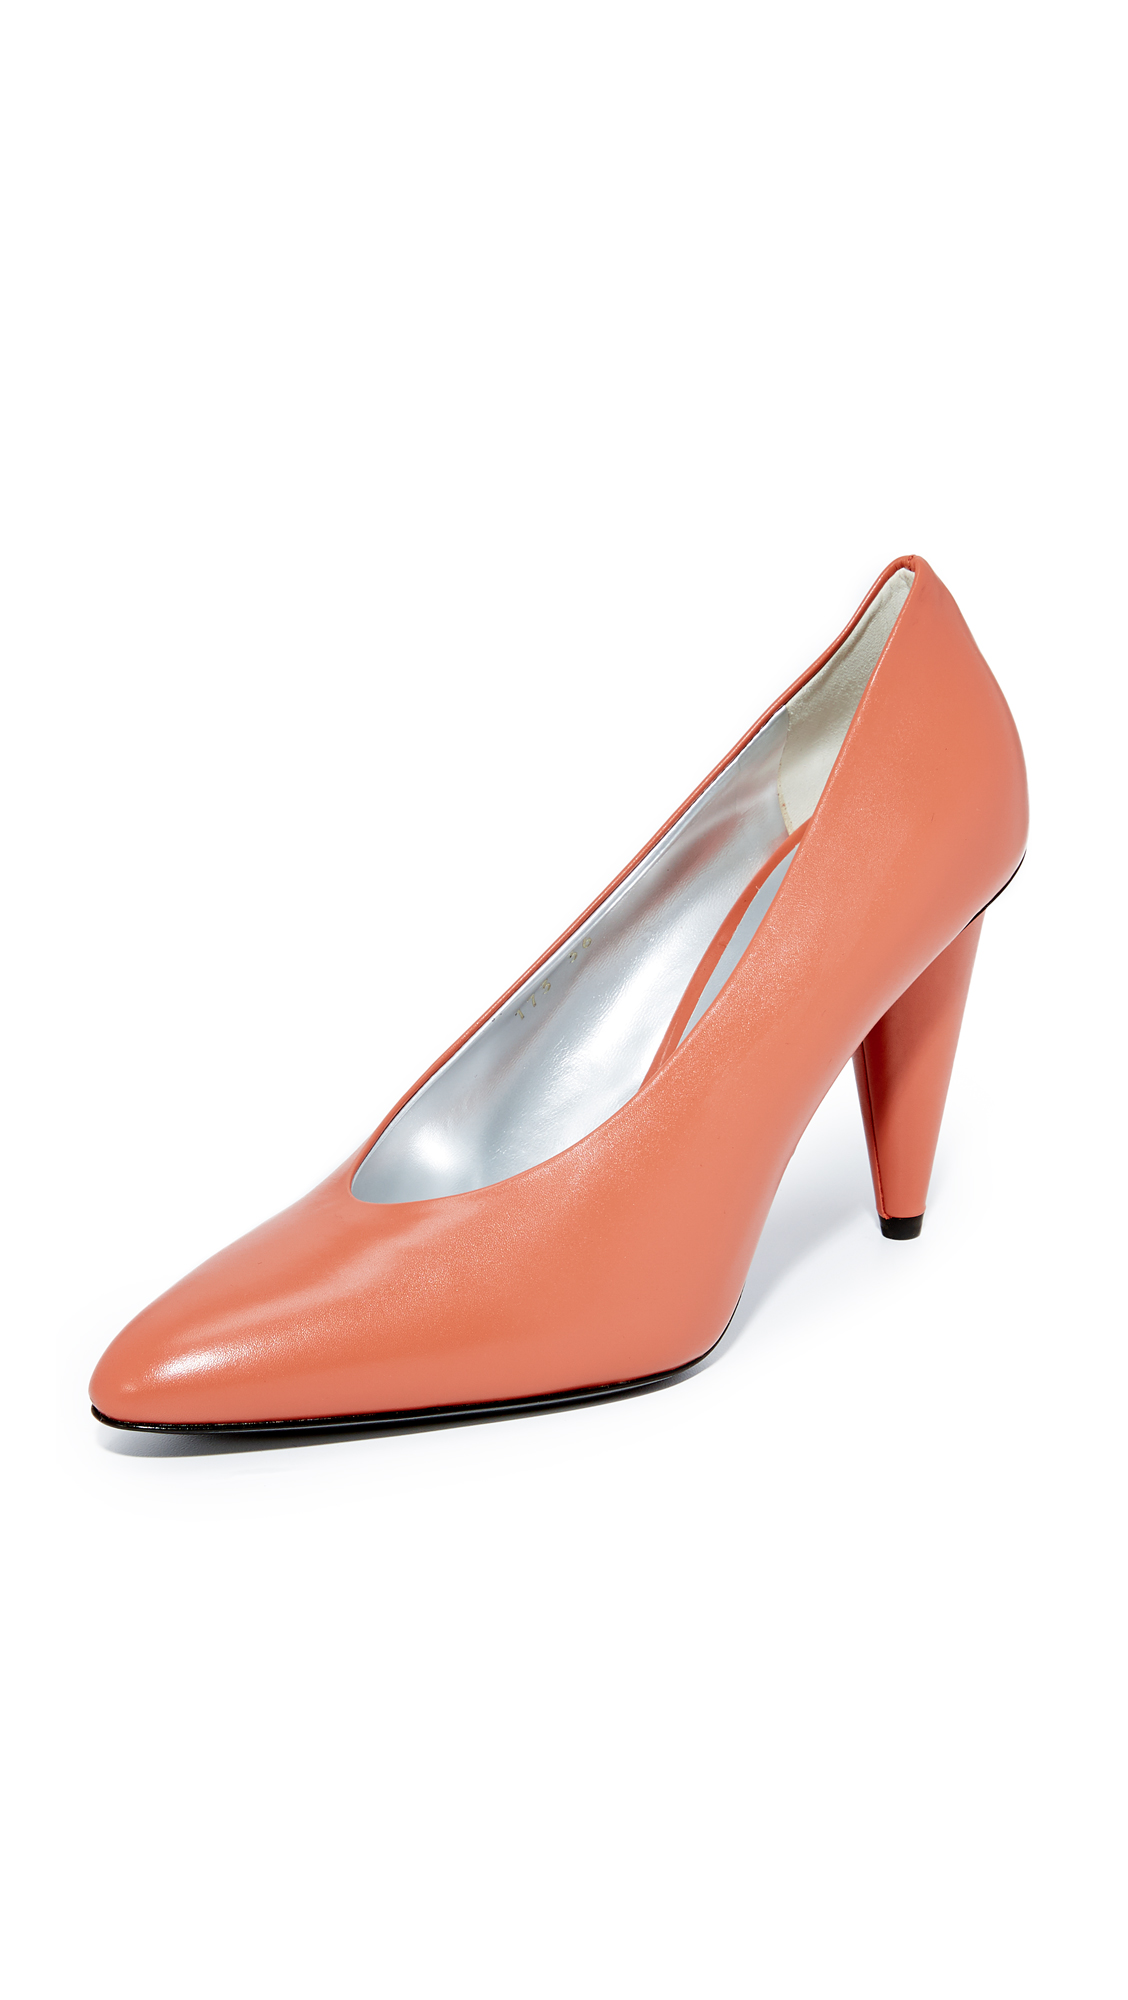 Acne Studios Suria Pumps - Powder Pink